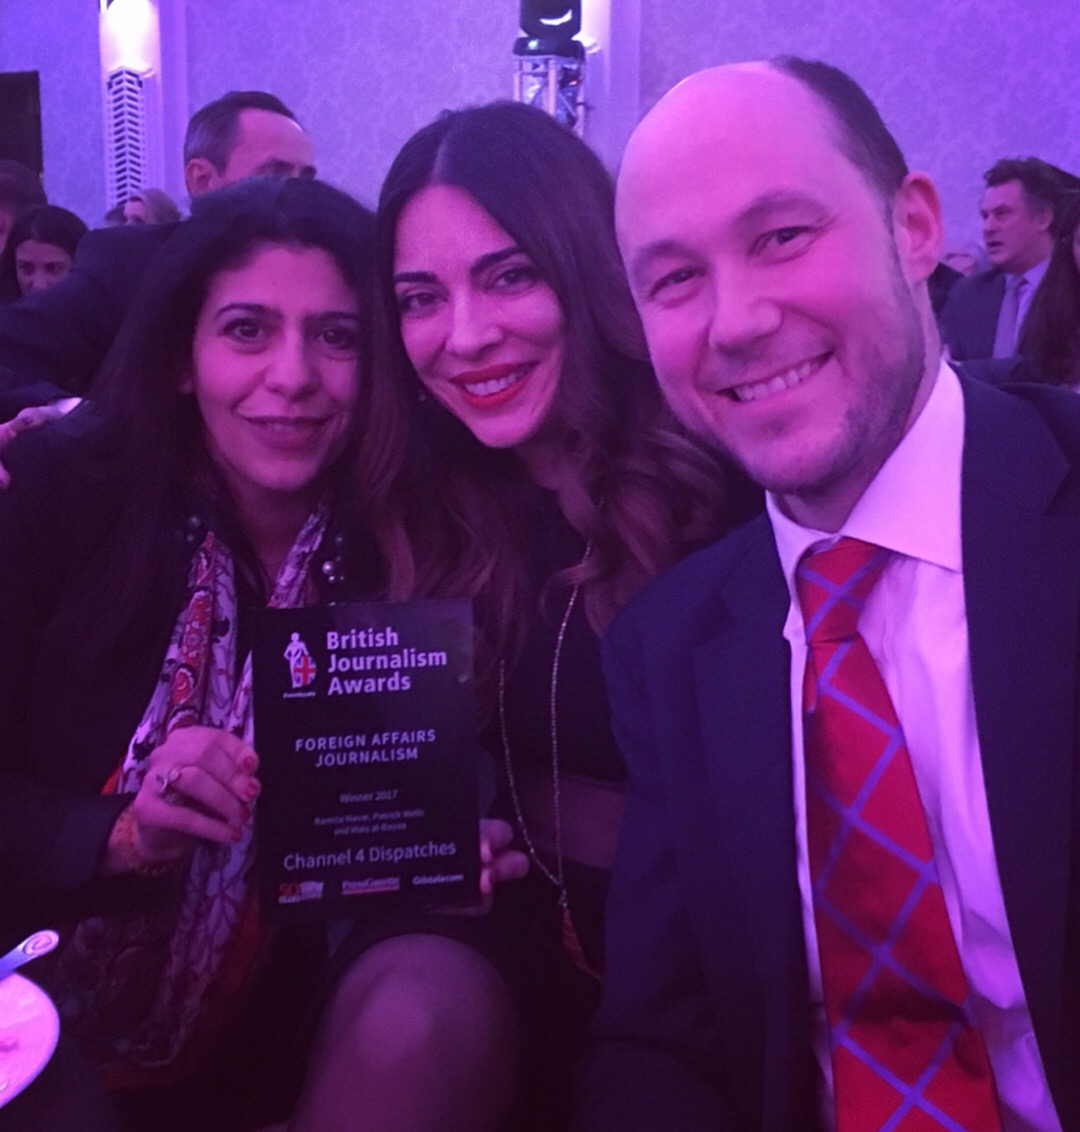 With Channel 4 commissioning editor Tom Porter and producer Mais AlBayaa.